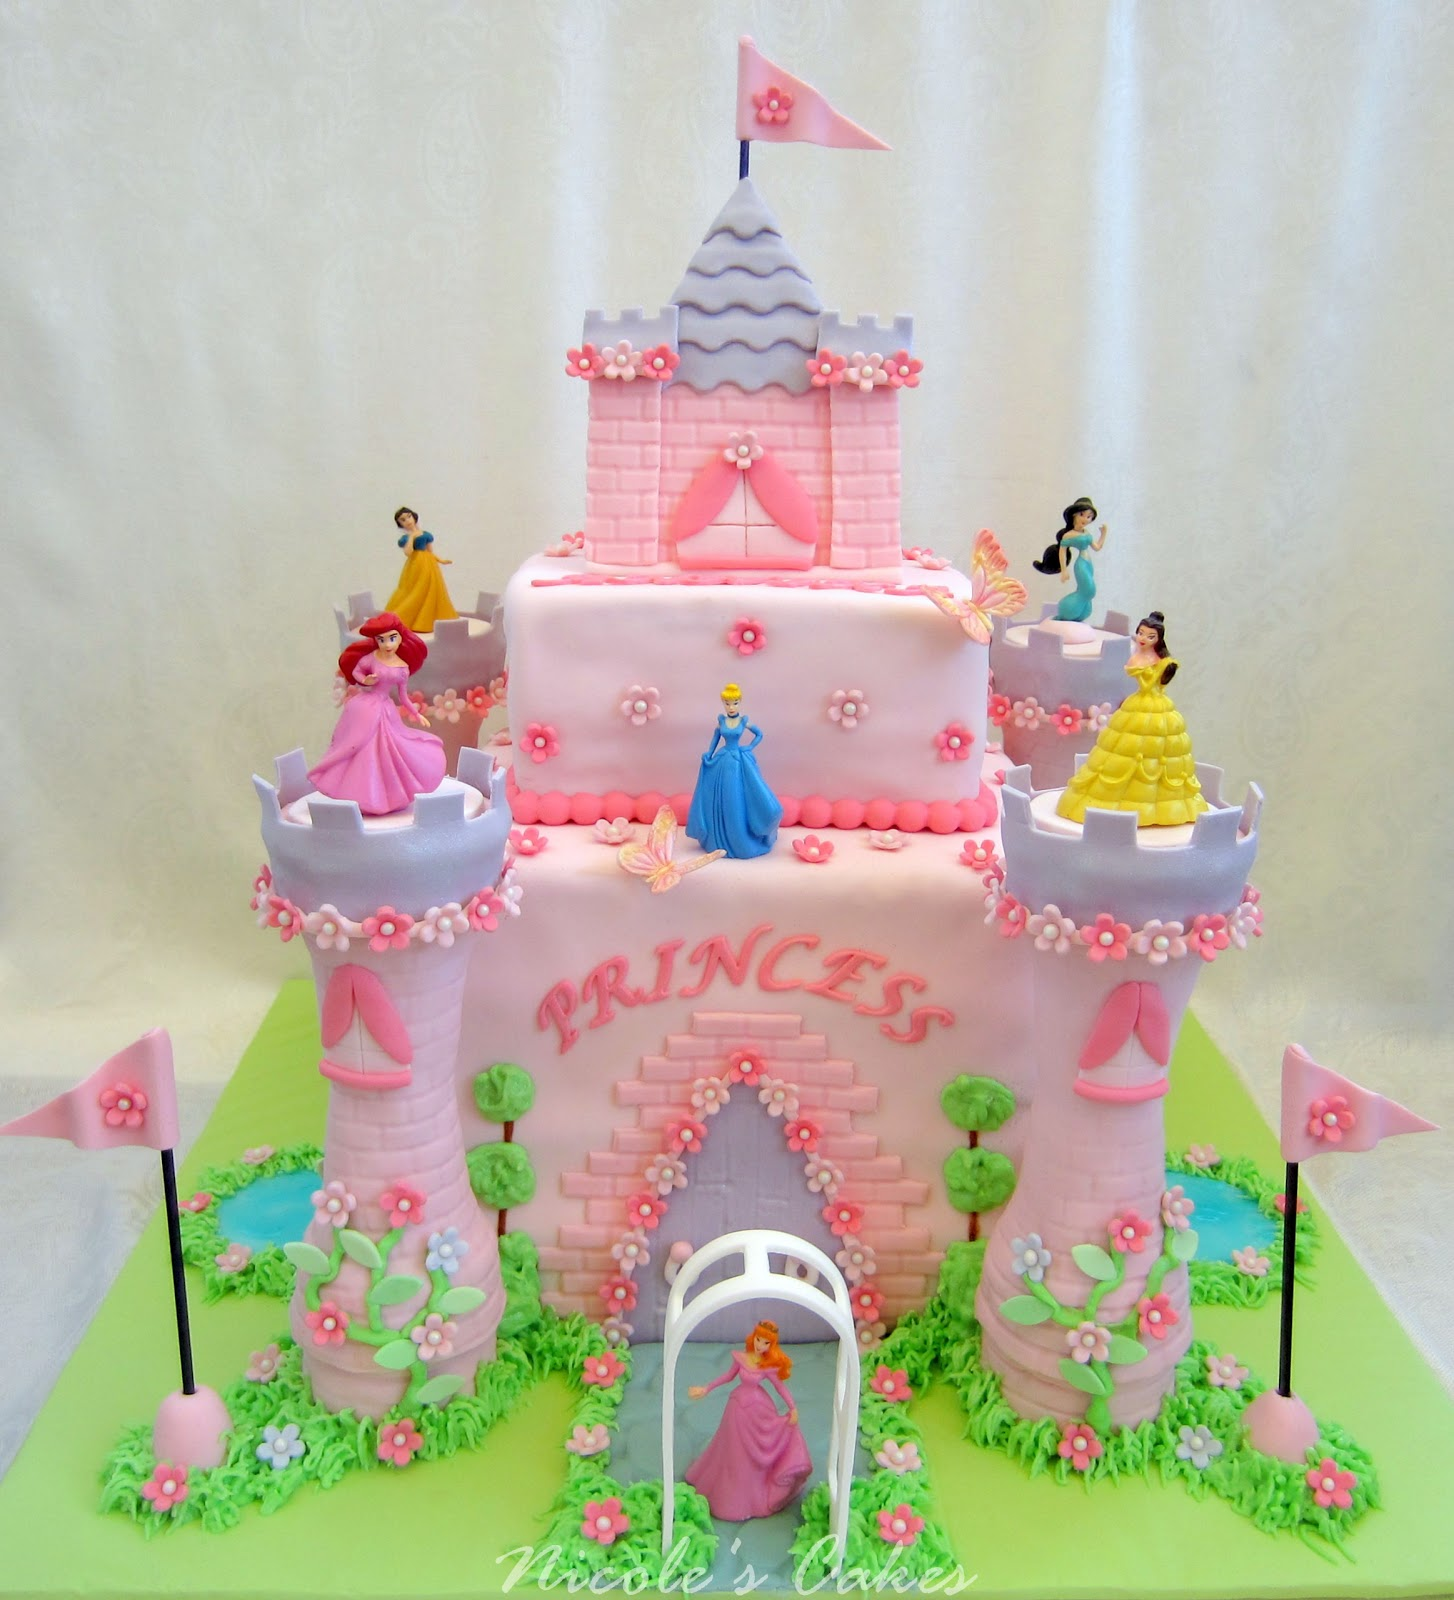 Birthday Cake Pictures Of Princess : On Birthday Cakes: Princess Castle Cake